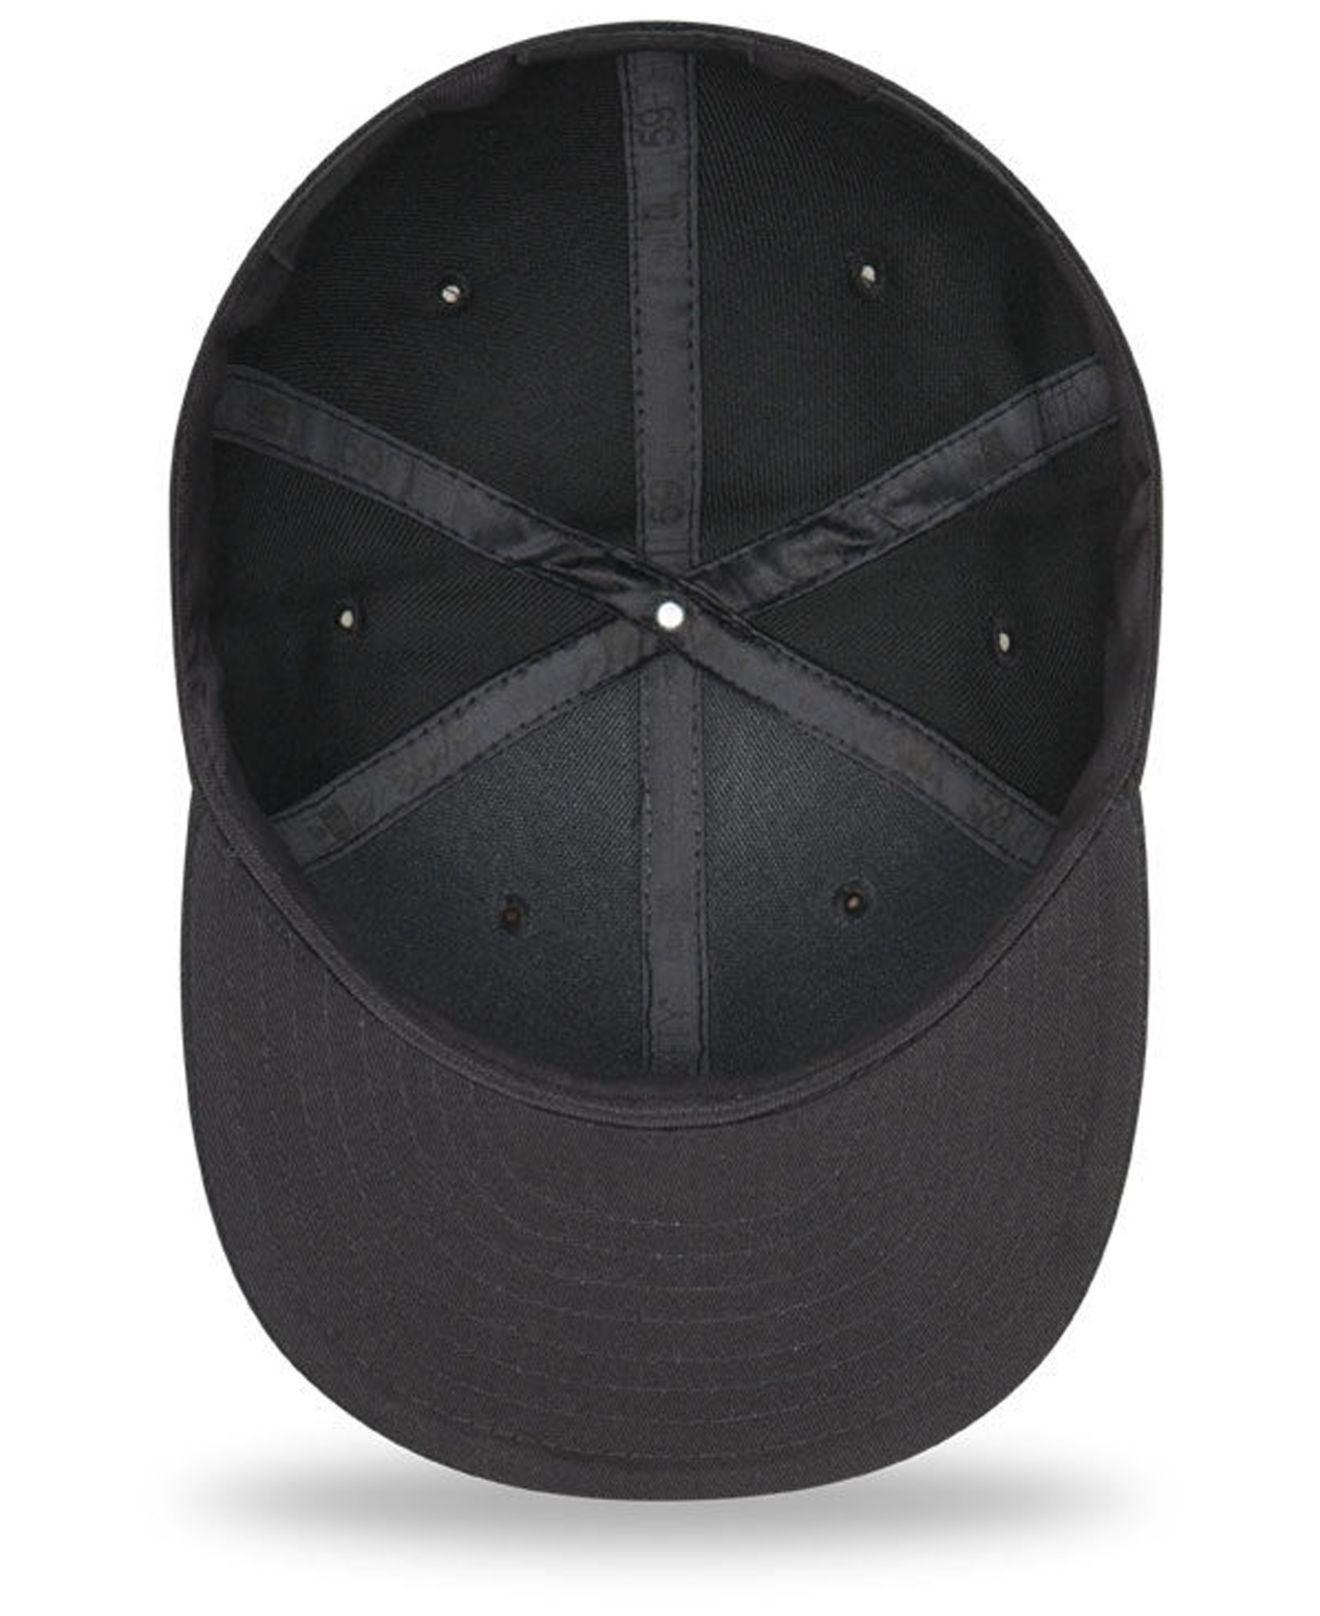 brand new aac92 05974 ... wholesale ktz colorado rockies blackout 59fifty fitted cap for men lyst.  view fullscreen dc93e b42a0